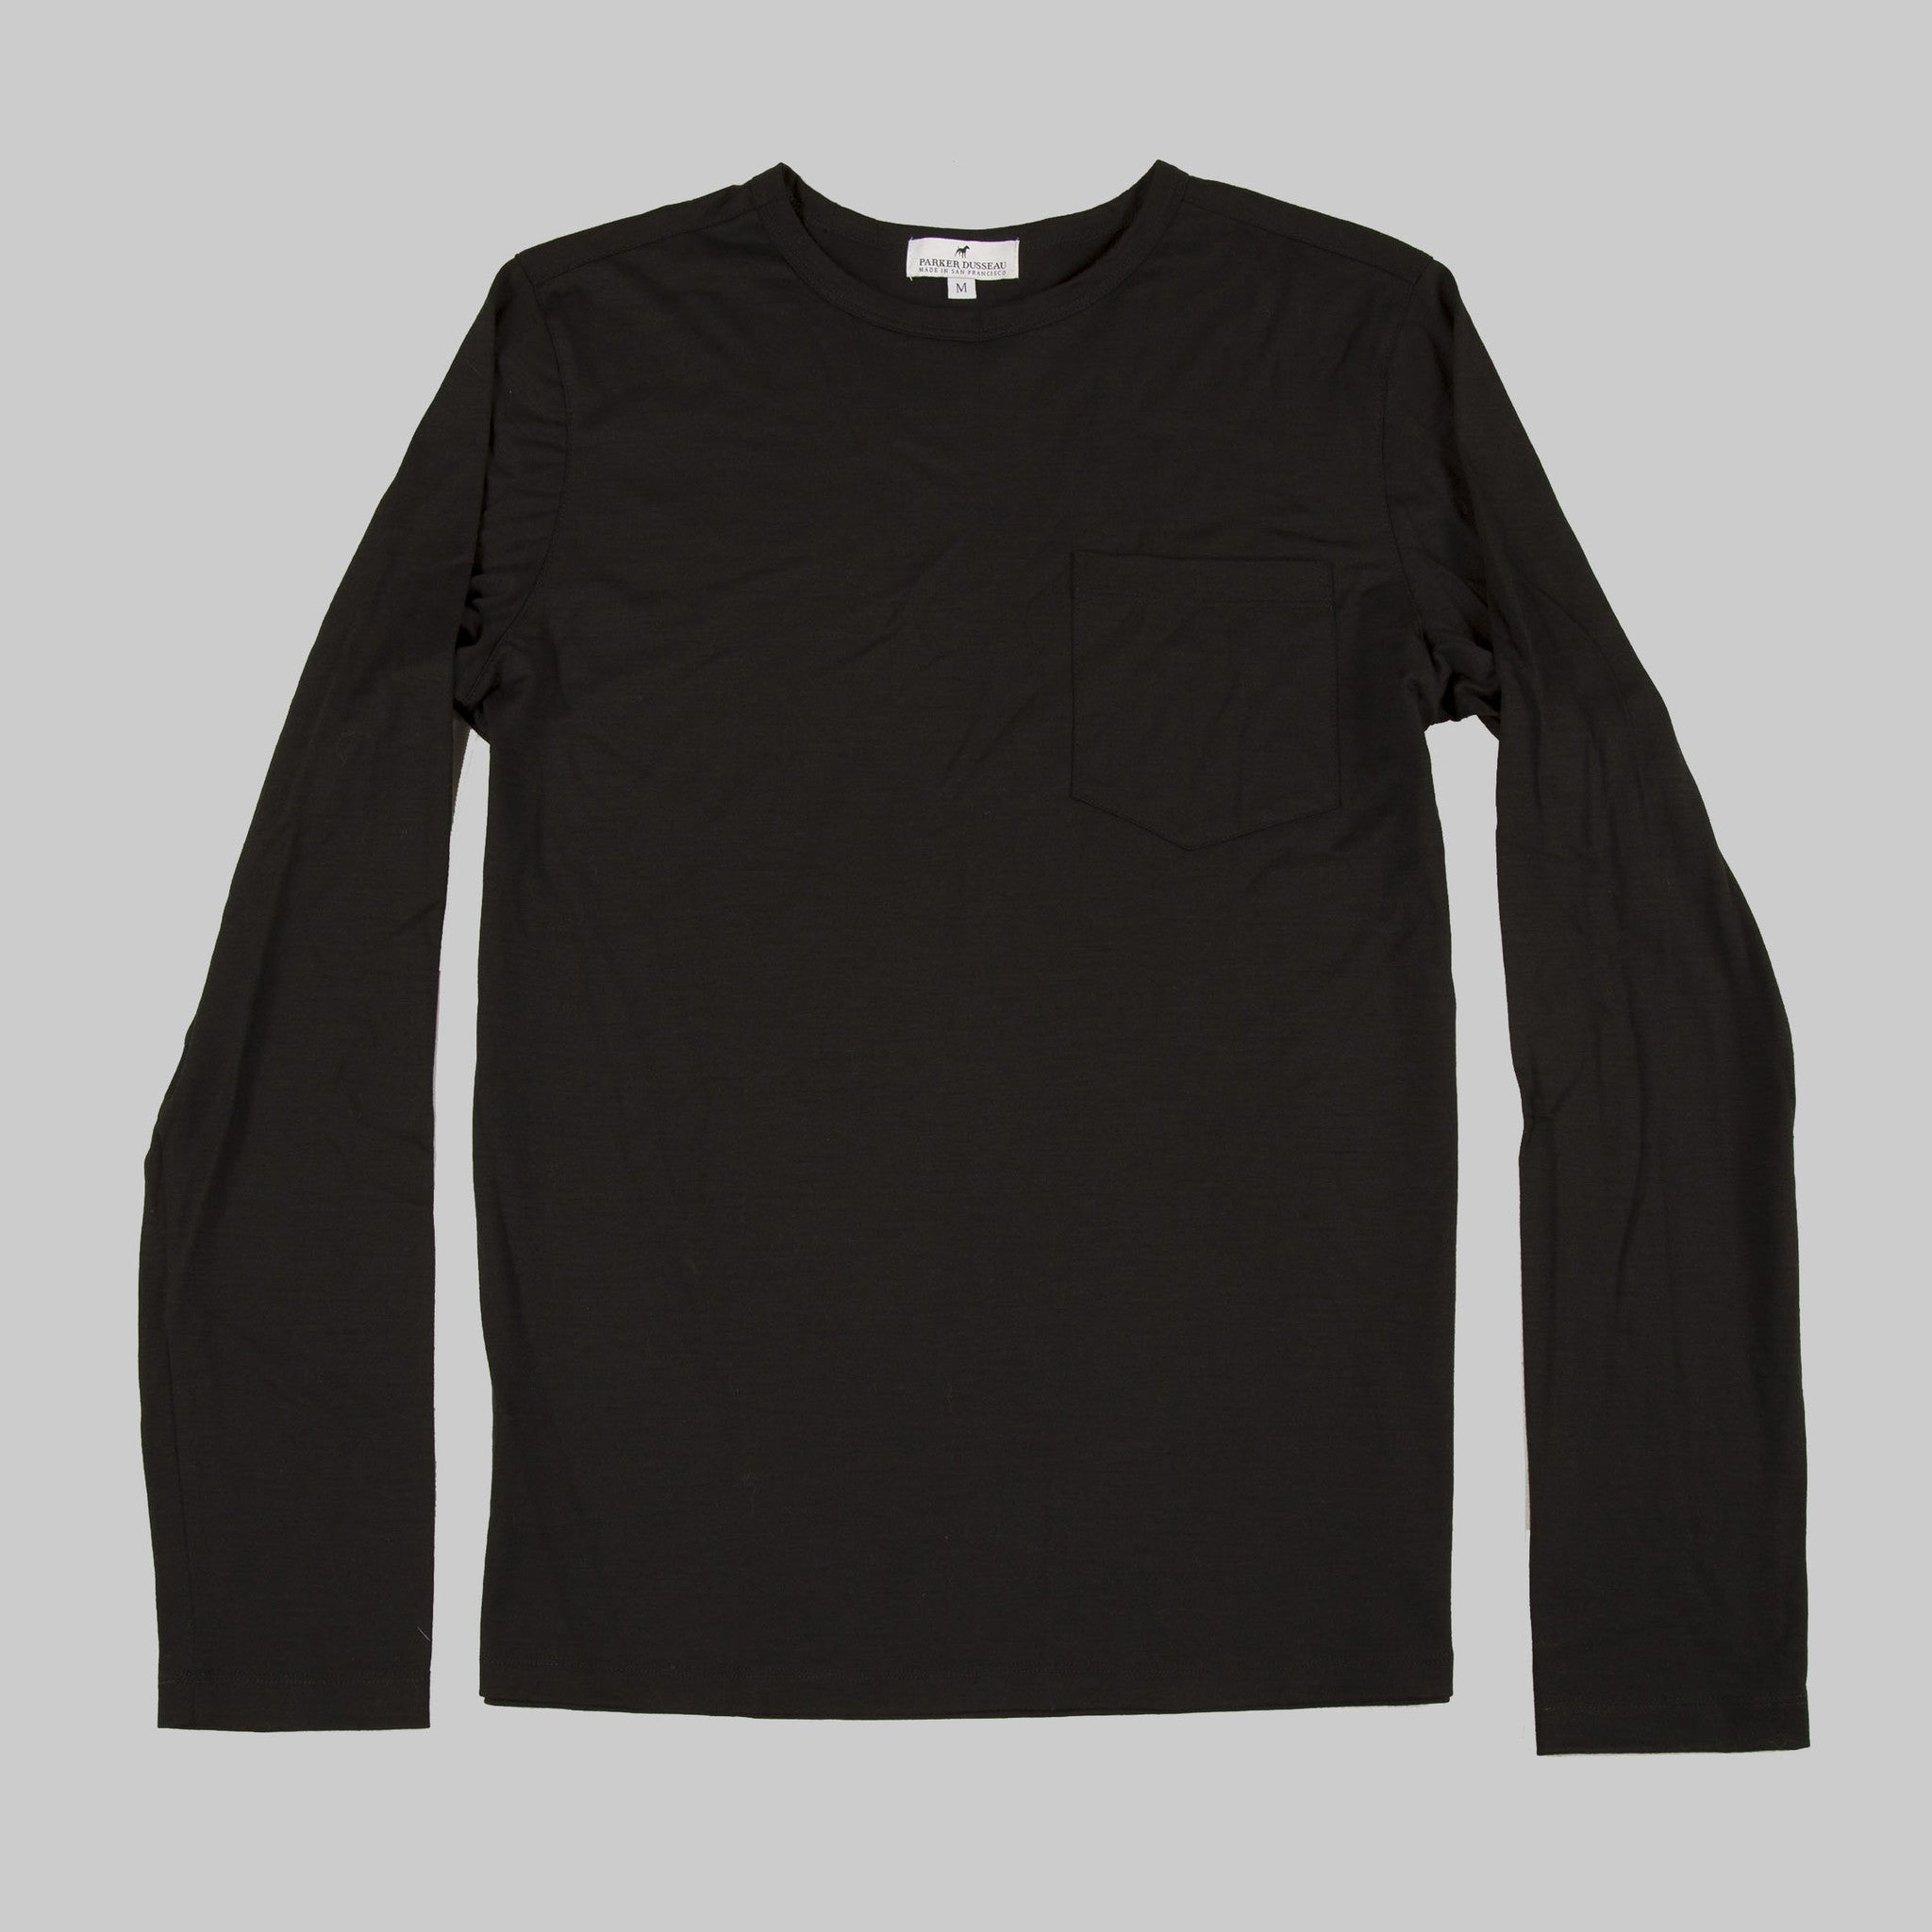 100% Merino Wool Long Sleeve Tee - Black Long Sleeve Merino Tee- Parker Dusseau : Functional Menswear Essentials for the Always Ready Lifestyle. Based in San Francisco, California